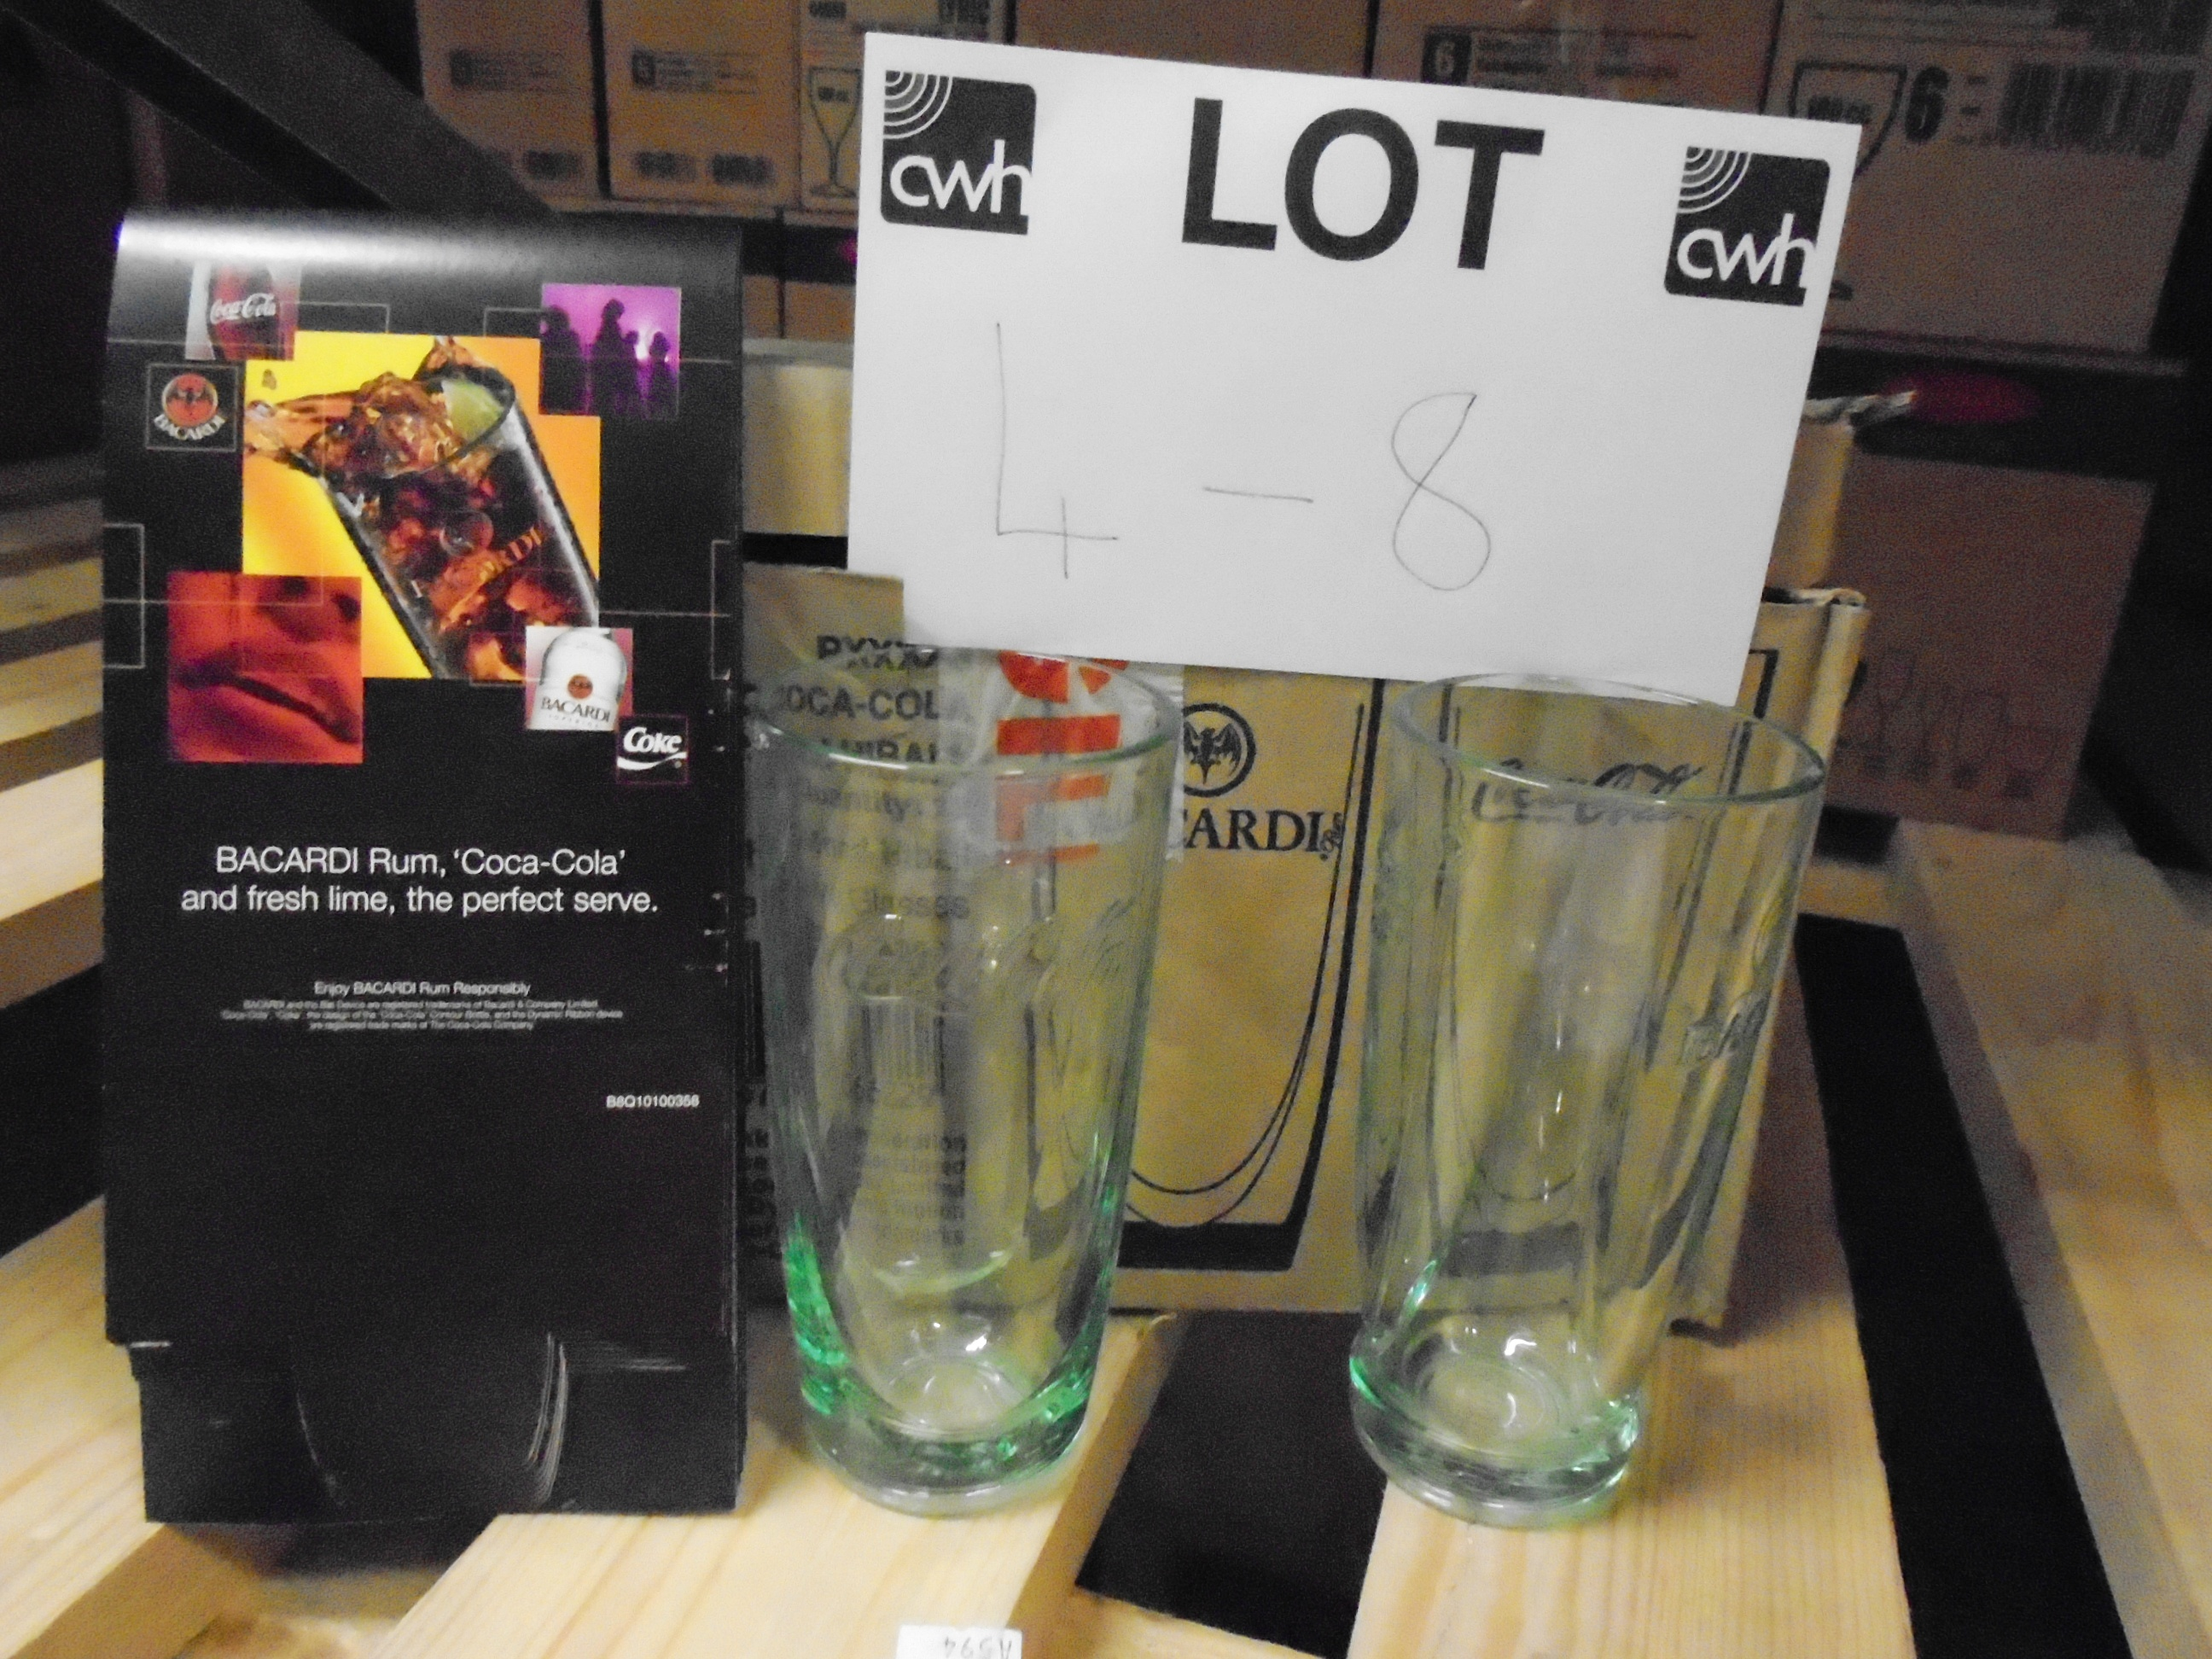 Lot 7 - 120 x 33cl Bacardi rum and Coca-Cola glasses (10 x outer boxes)